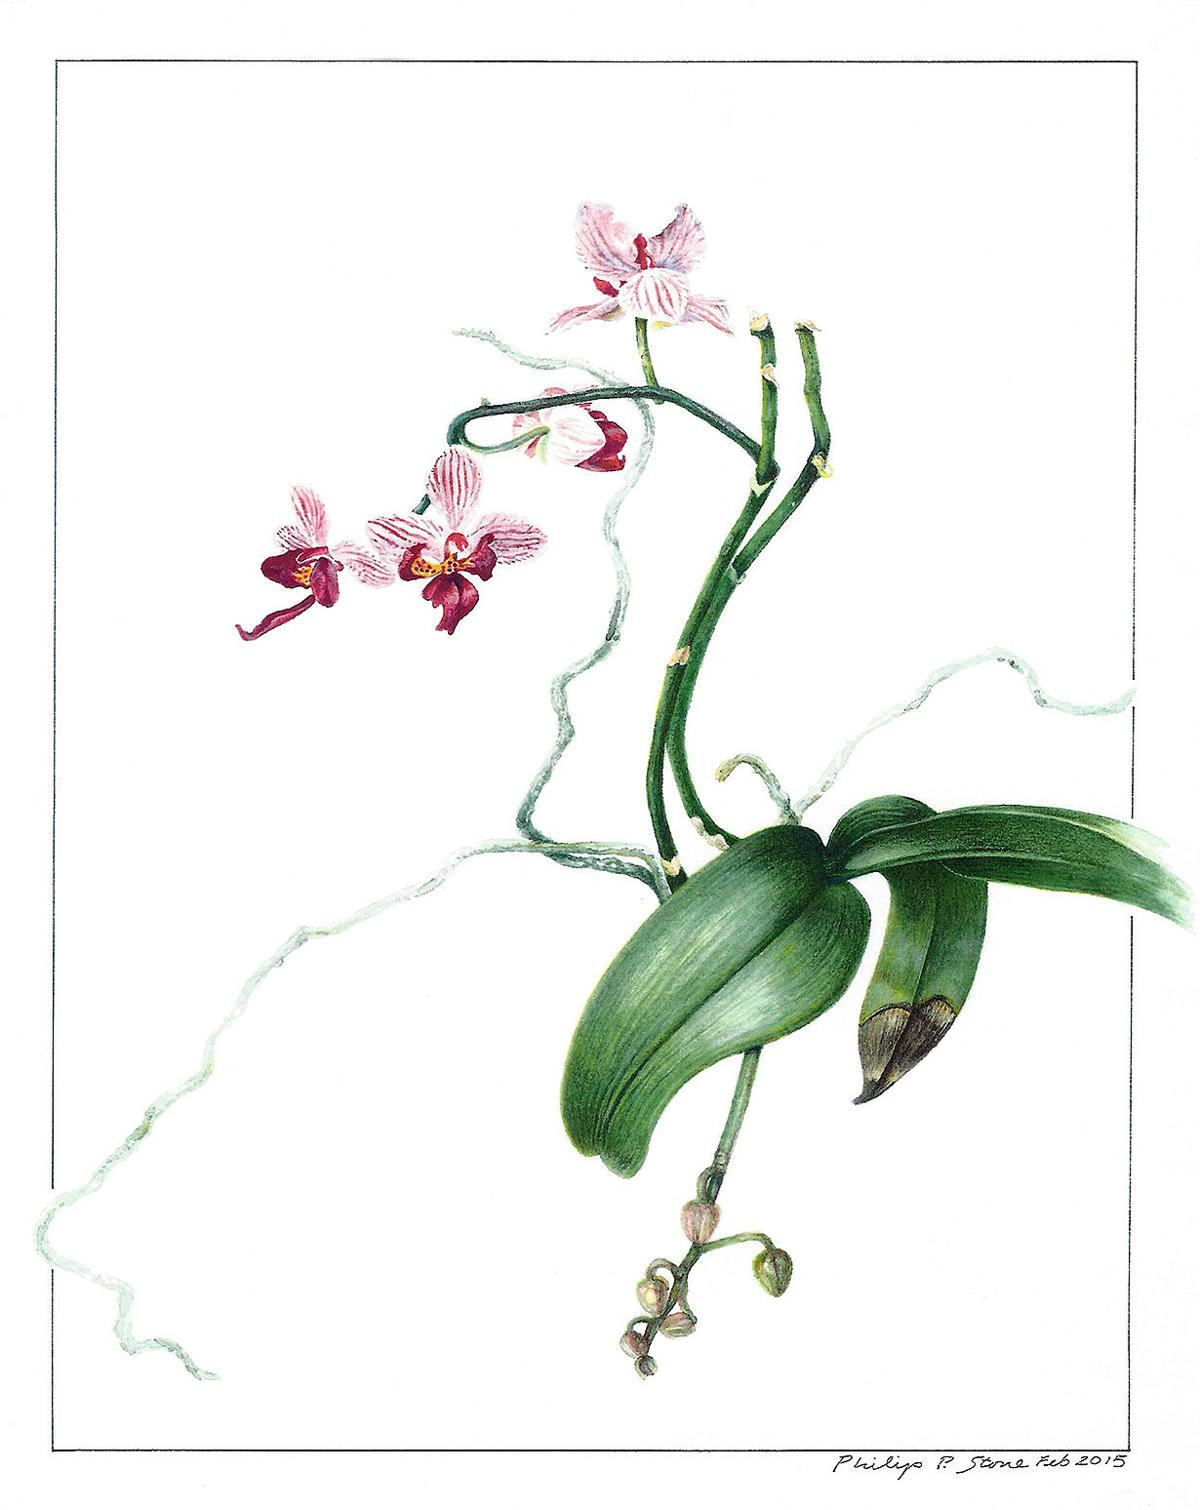 At Woodbury Public Library: Plant Pressings and Botanical Drawings Exhibit Planned